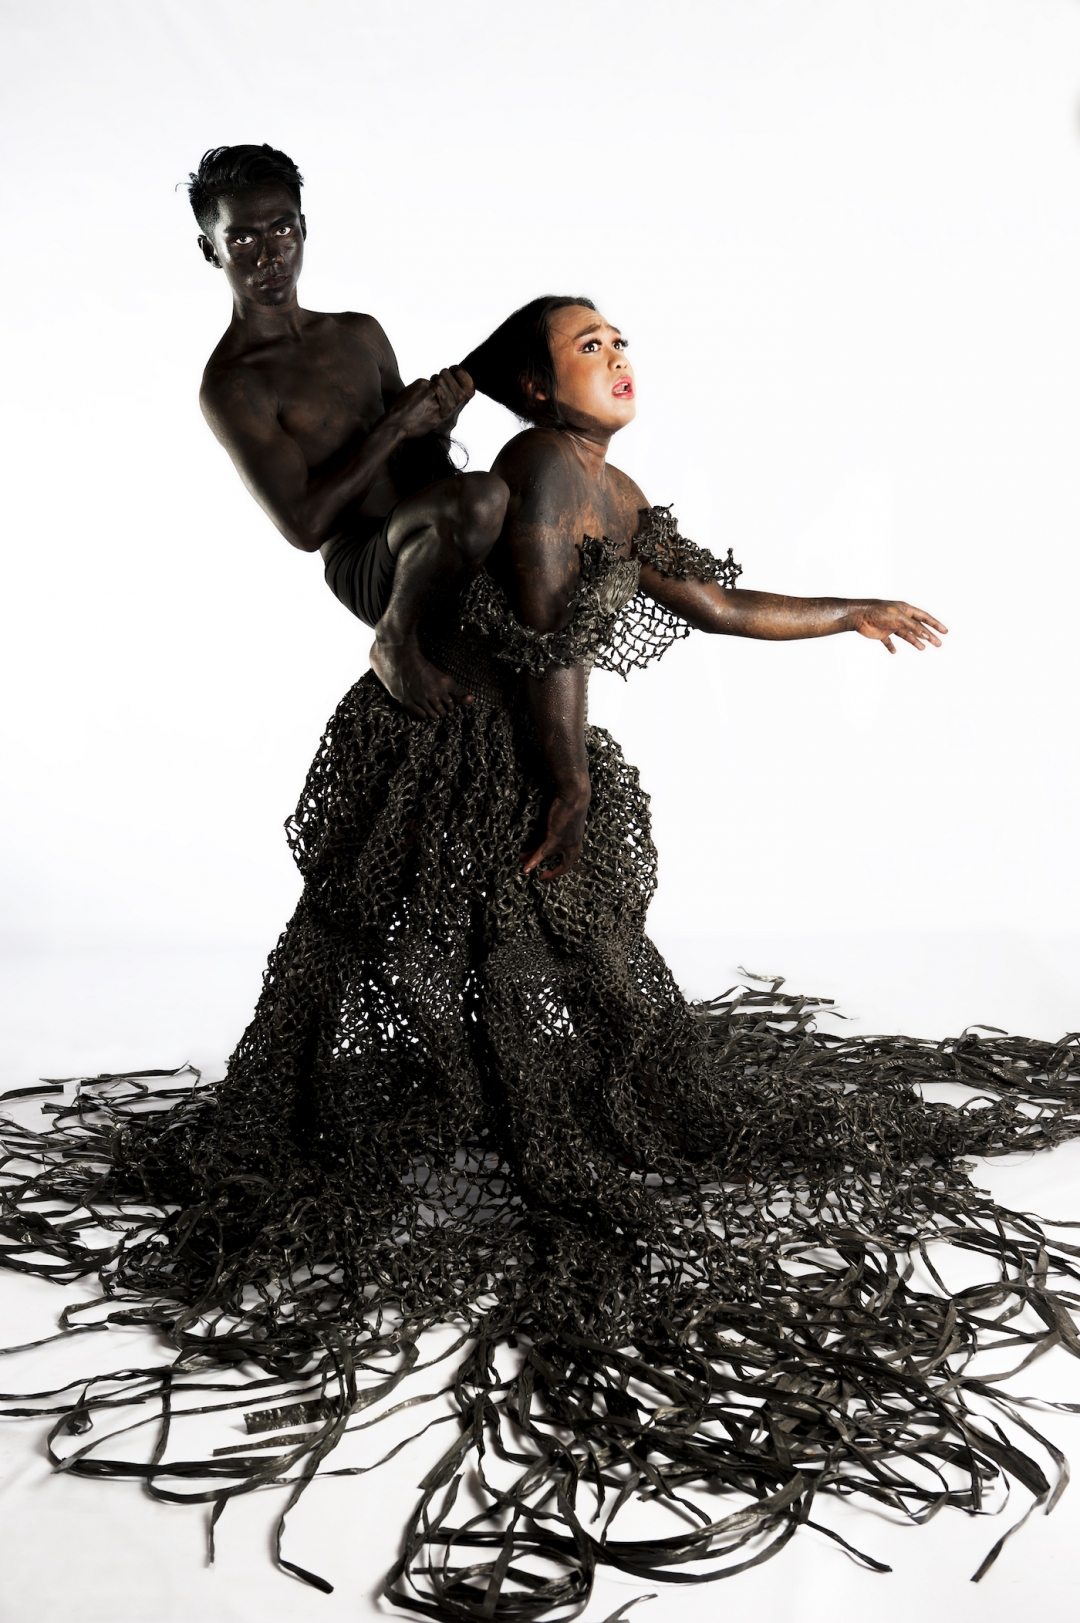 A woman dressed in black net-like fabric with oily substance covering her body grimaces as a naked man mounted on her back pulls back her hair.